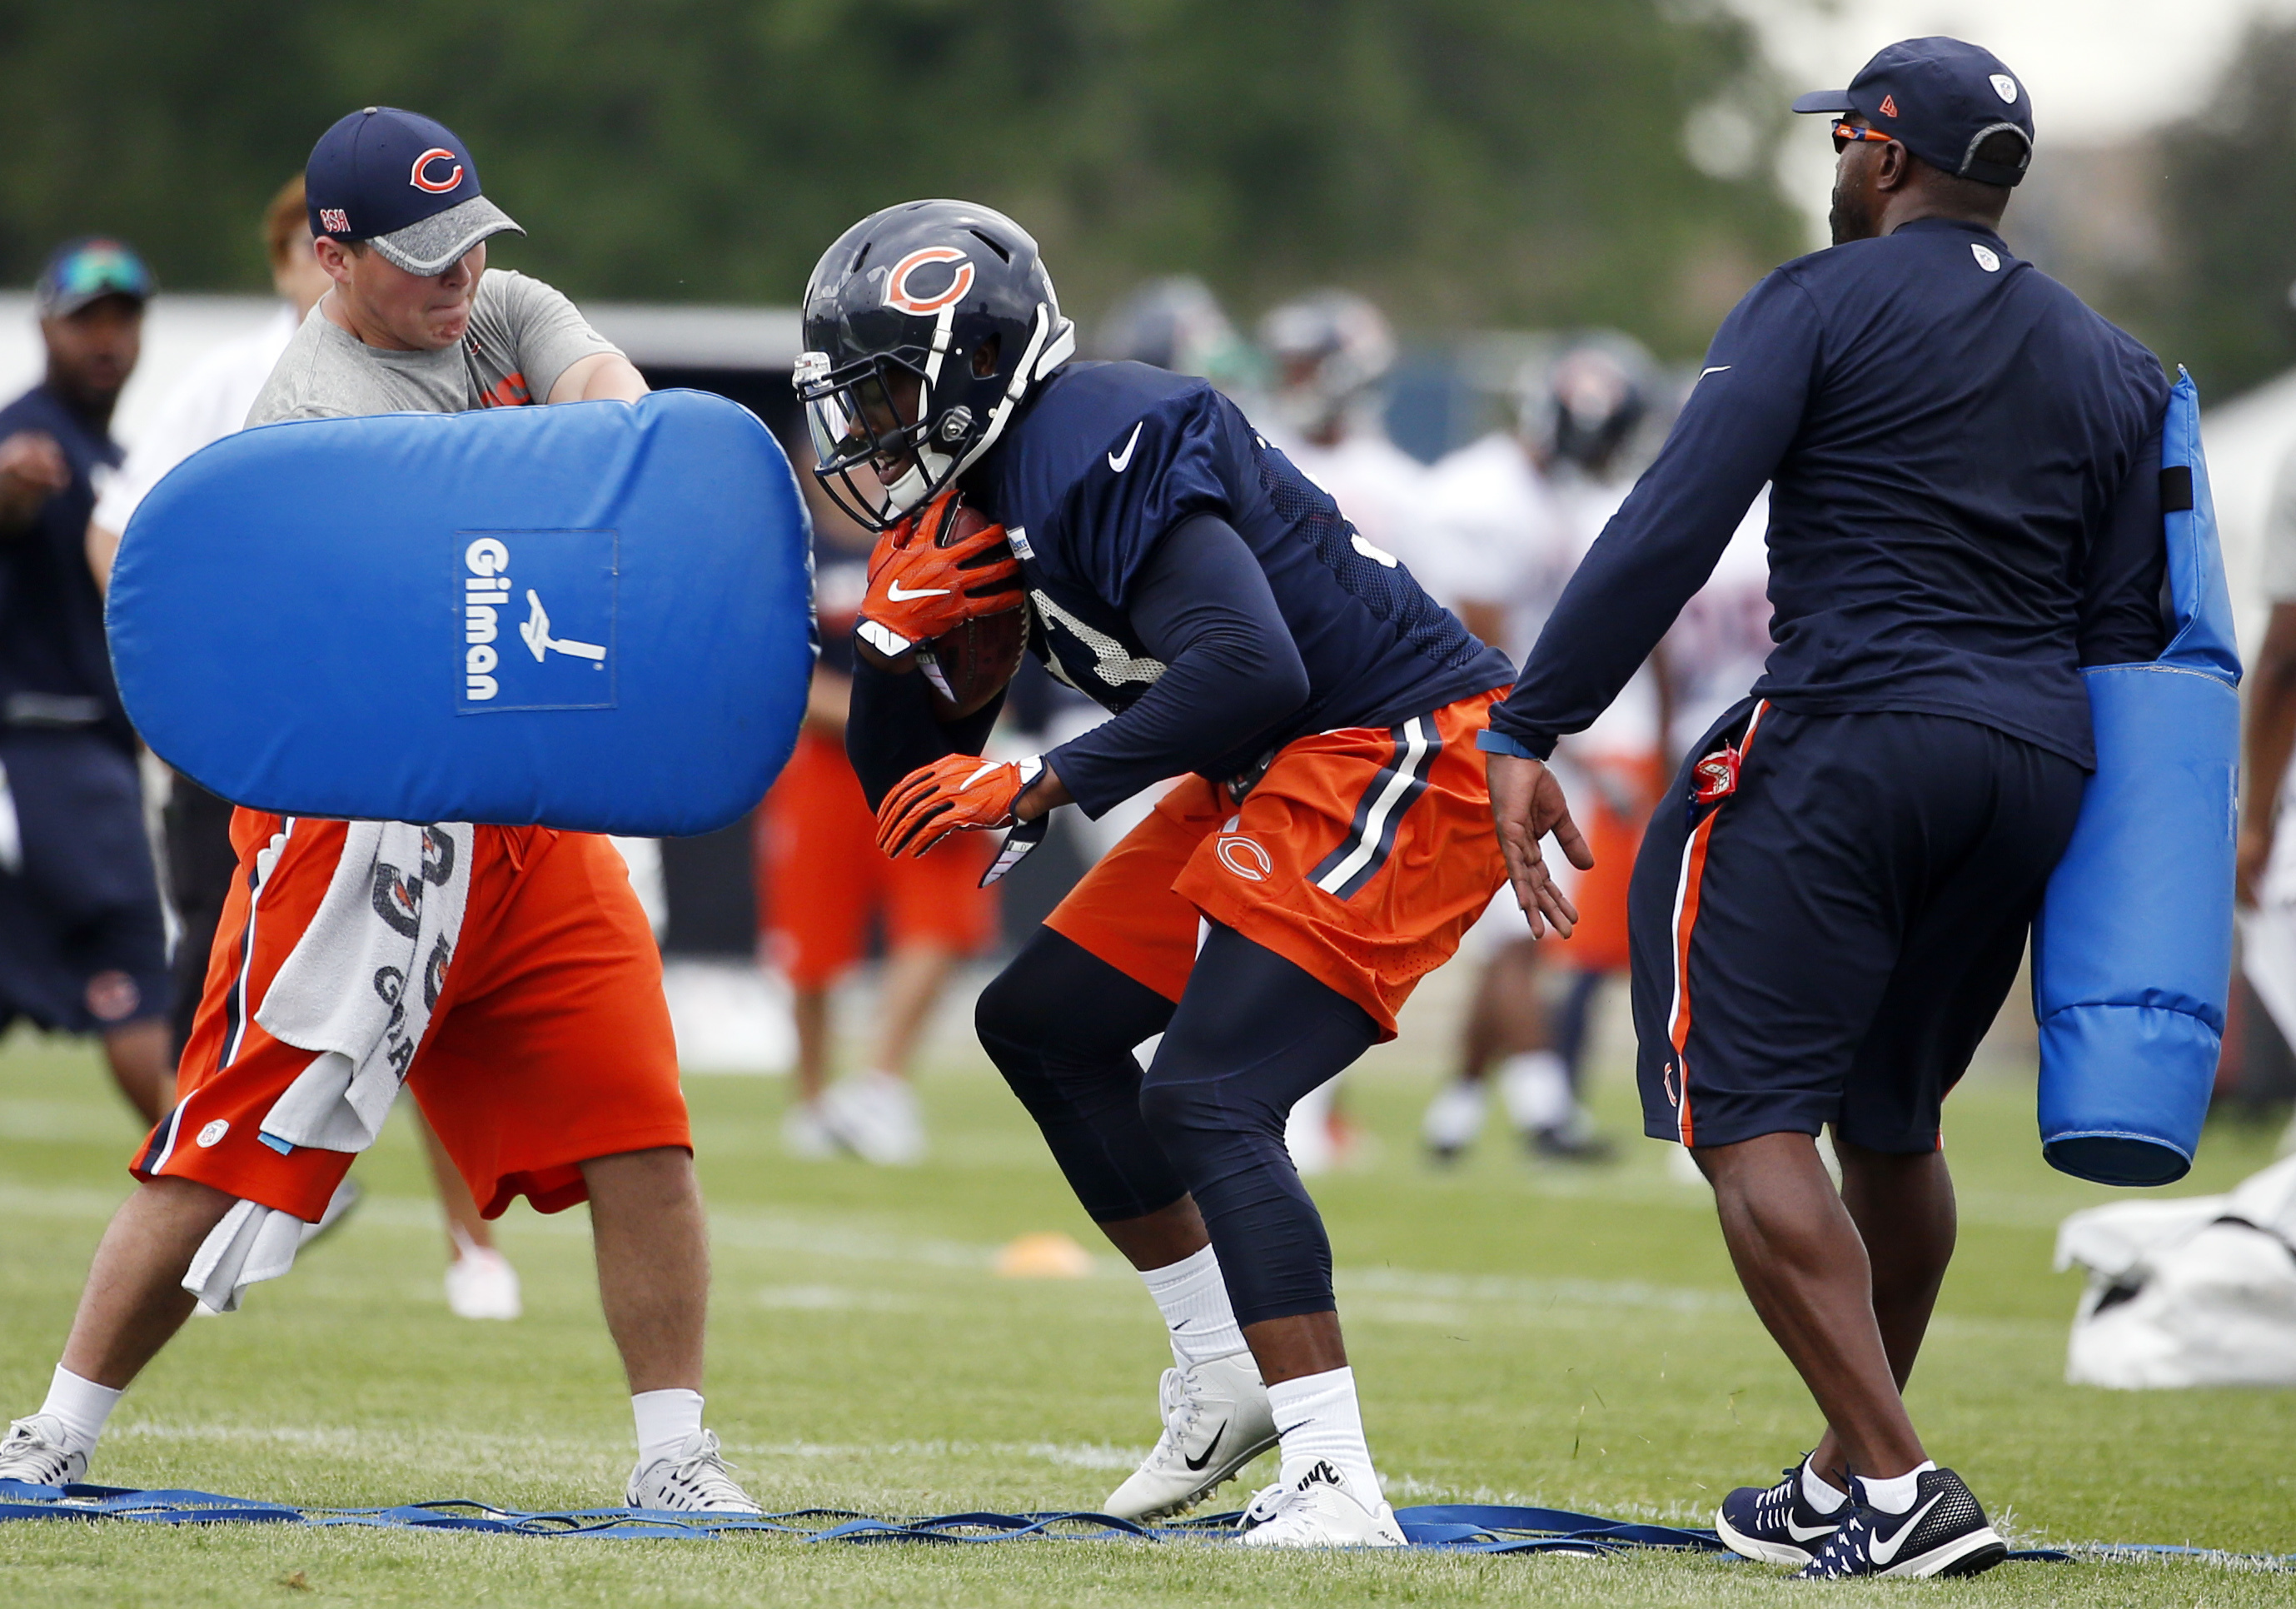 Chicago Bears running back Jeremy Langford works on the field during practice at the NFL football teams training camp at Olivet Nazarene University, in Bourbonnais, Ill., Friday, July 29, 2016. (AP Photo/Nam Y. Huh)